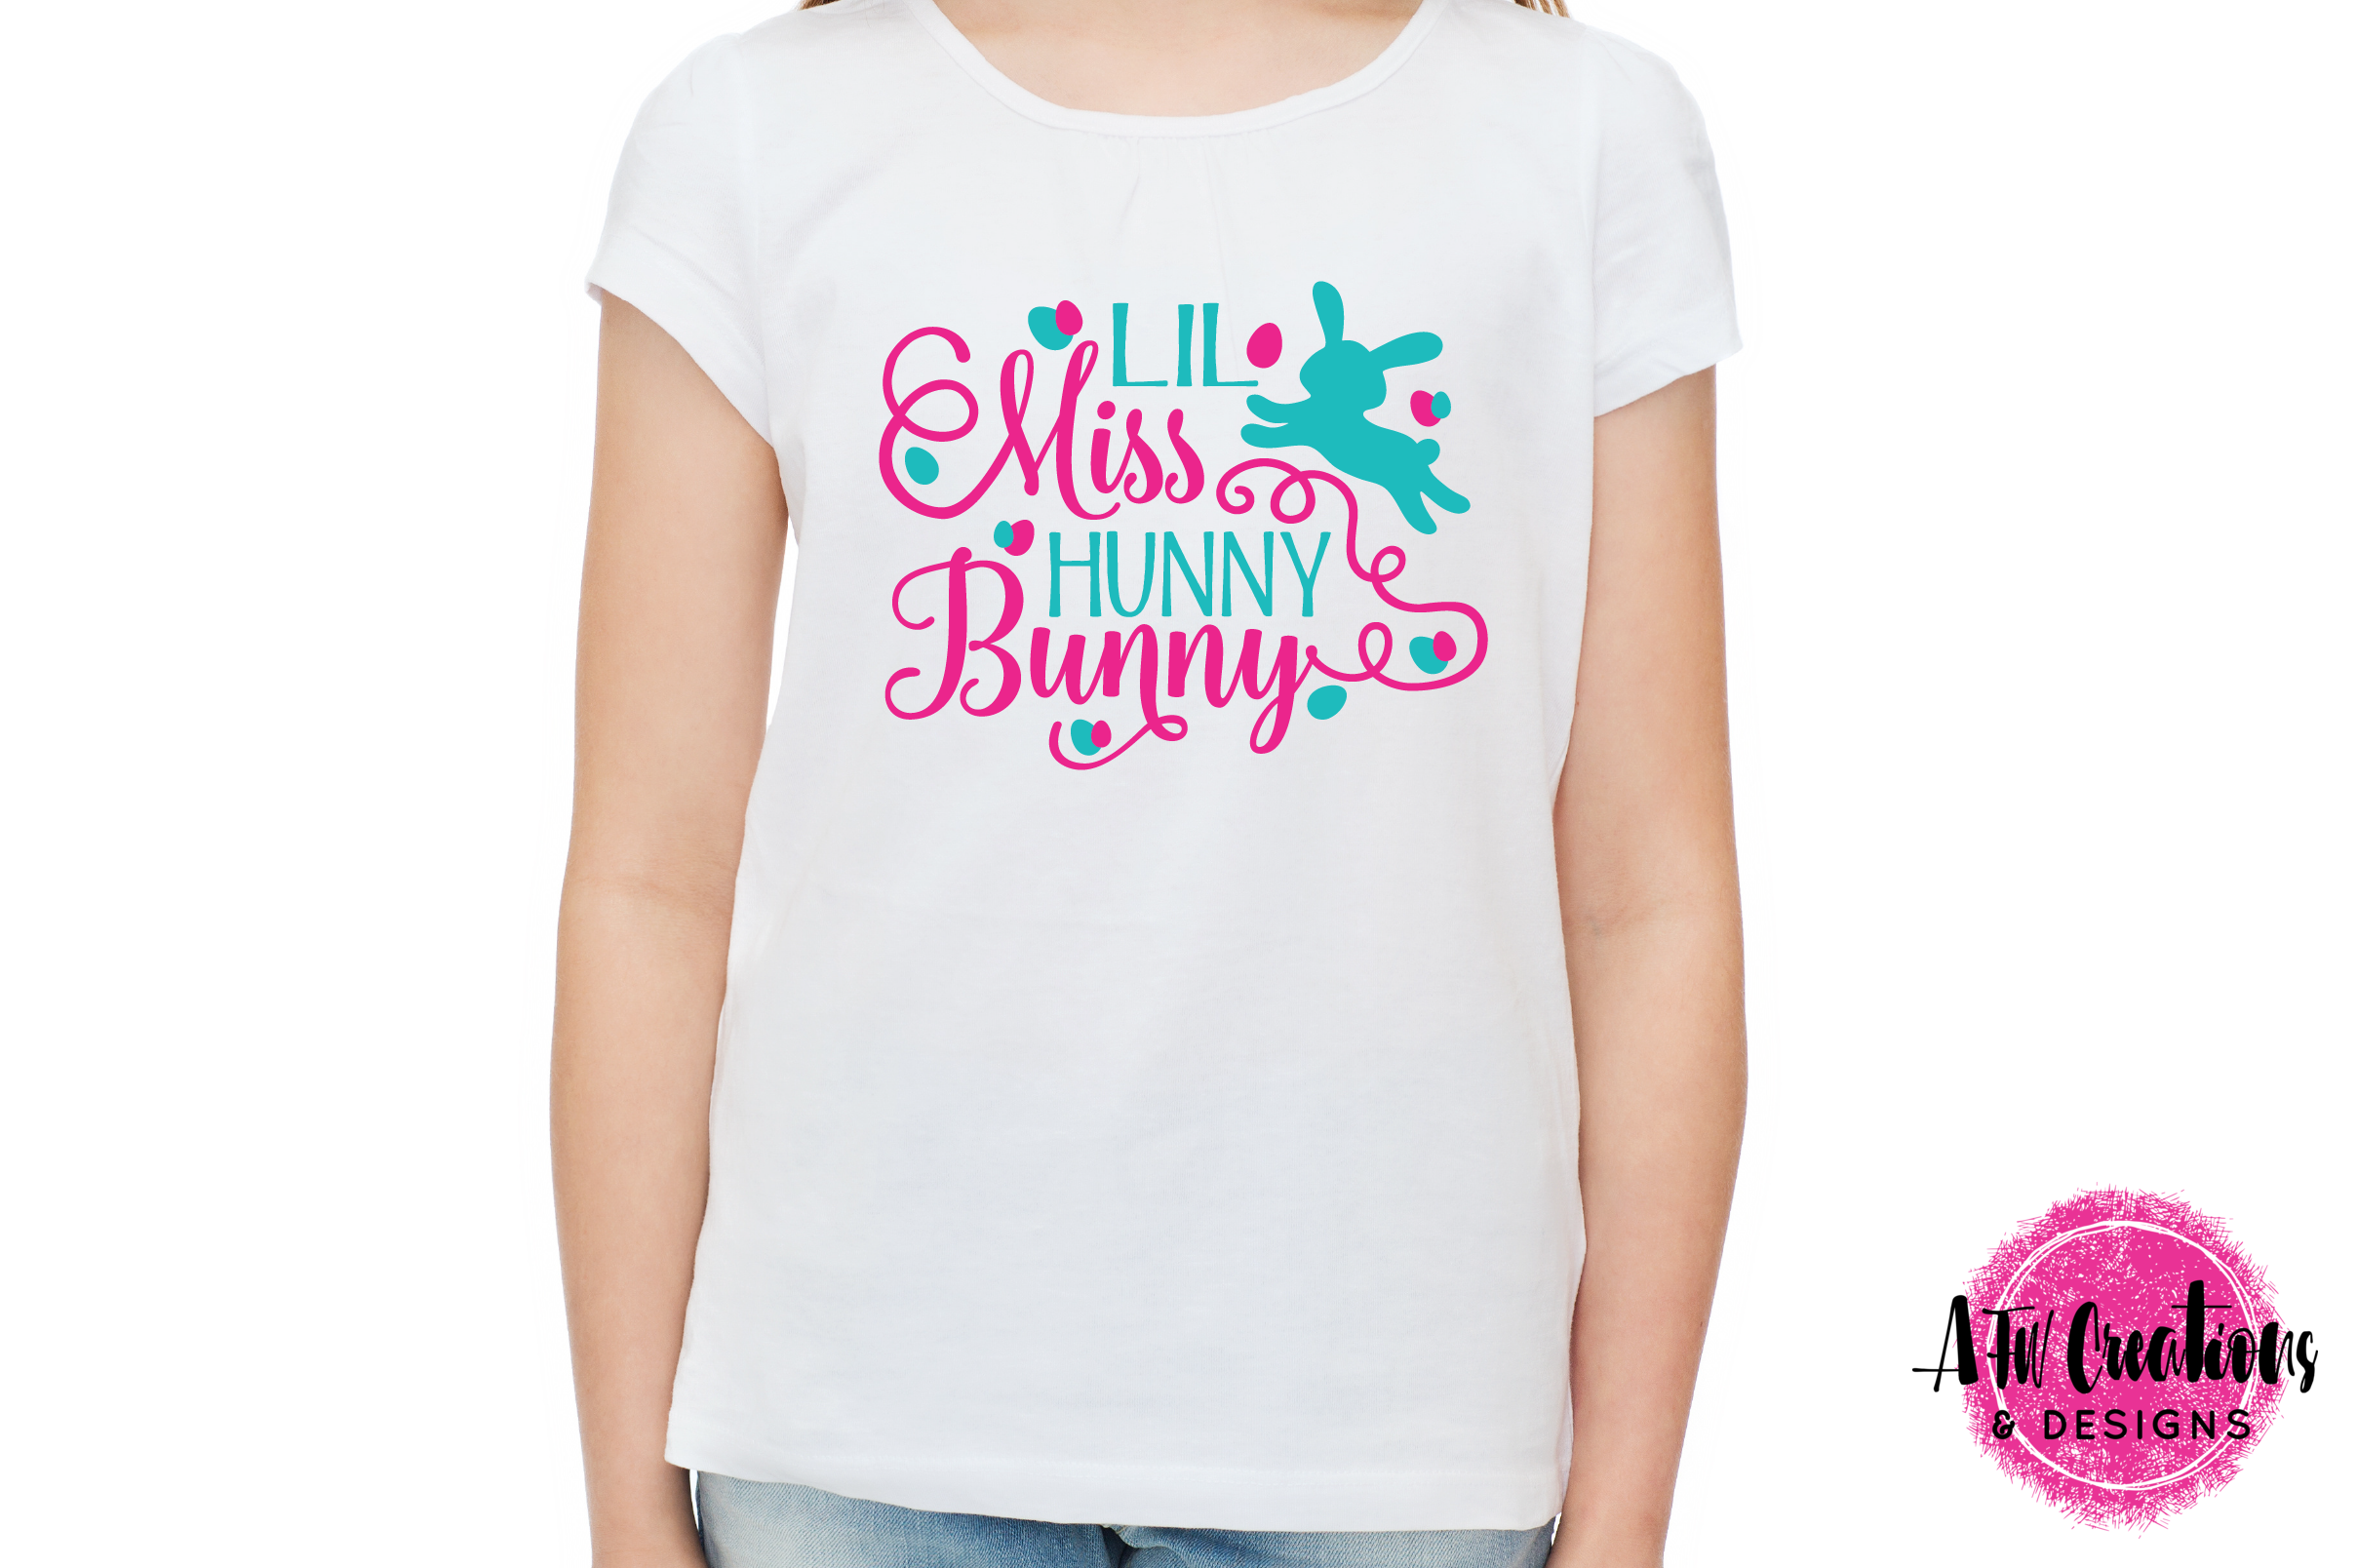 Lil Miss Hunny Bunny - SVG, DXF, EPS Cut Files example image 2